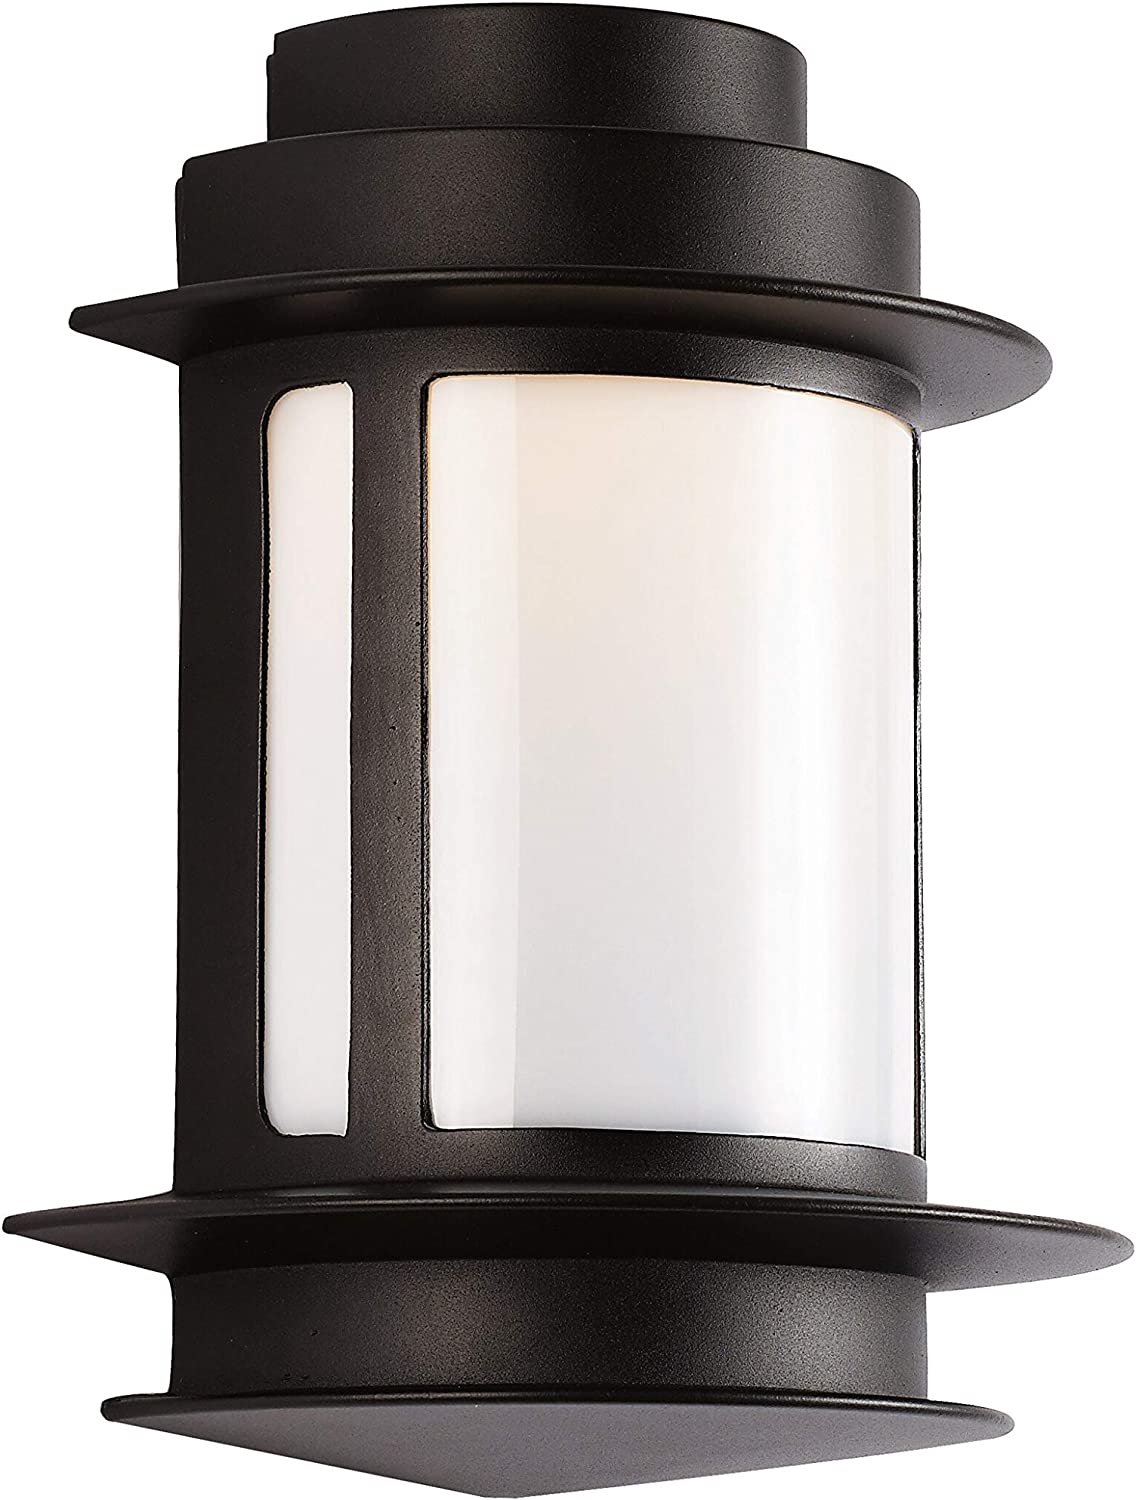 Unknown1 One Light Wall Lantern Black Chrome Traditional Ranking integrated 1st place Size Raleigh Mall